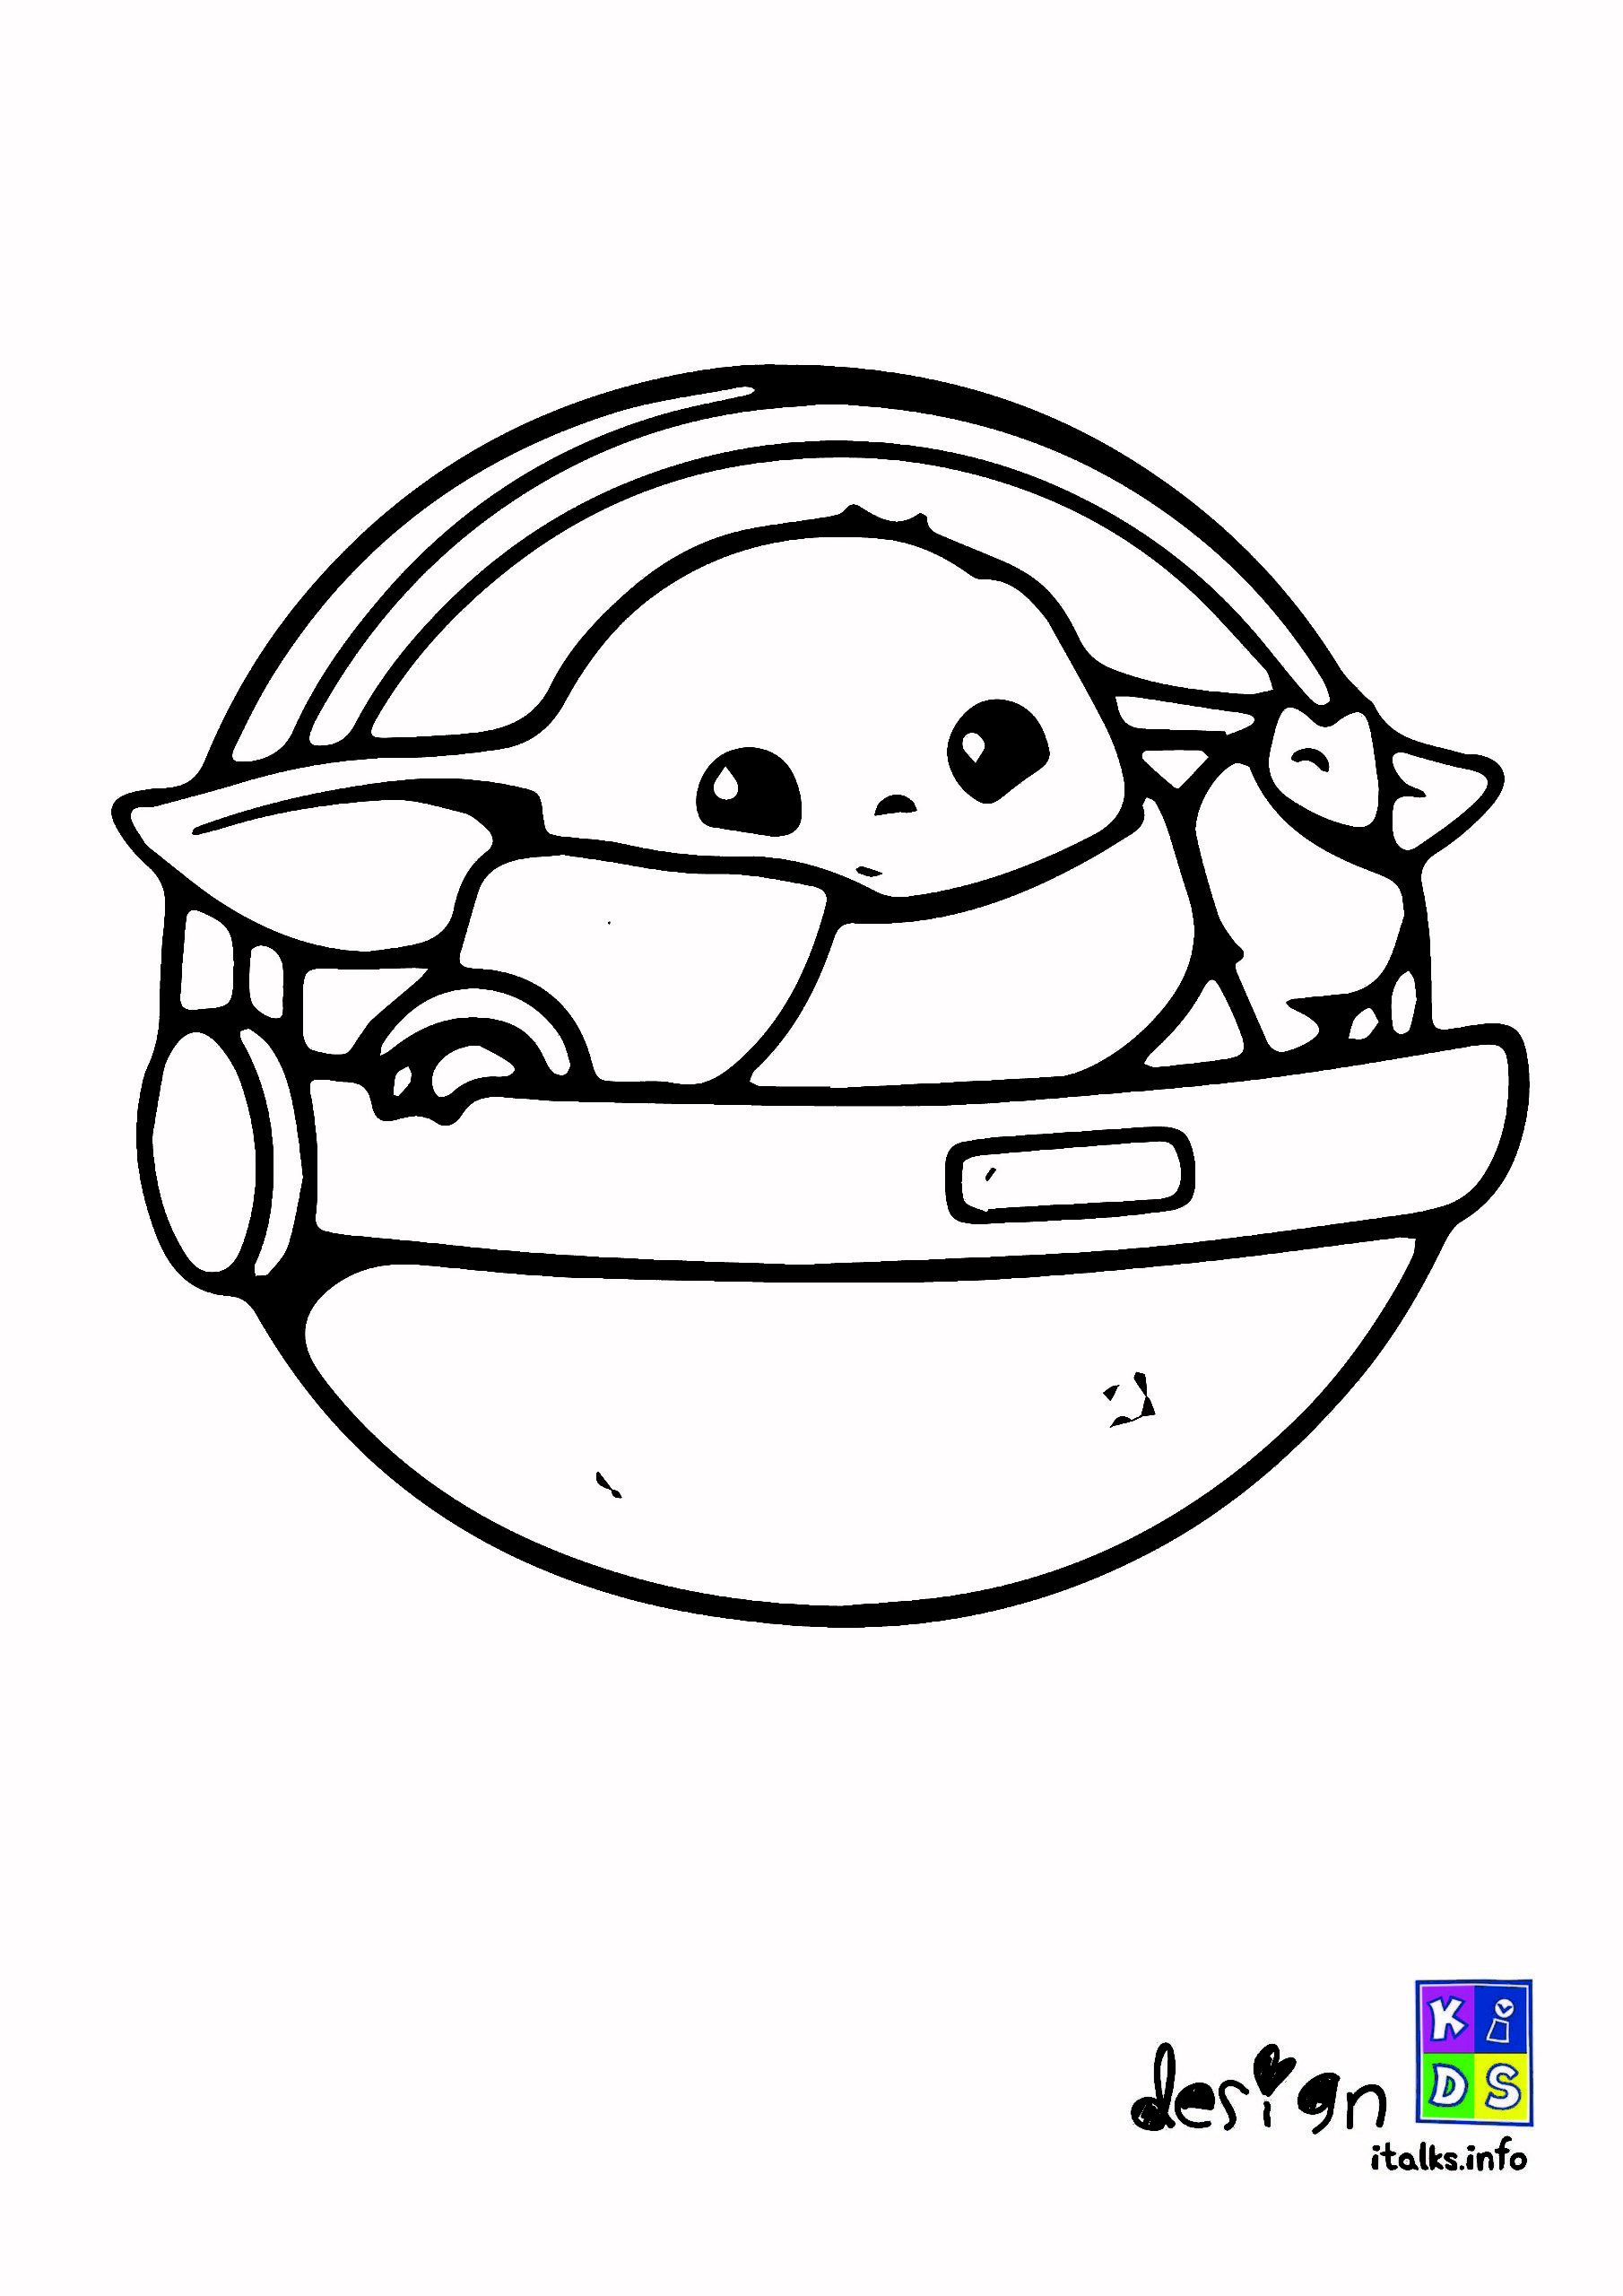 Baby Yoda Coloring Page Cute In 2021 Coloring Pages Coloring Books Cute Wallpapers